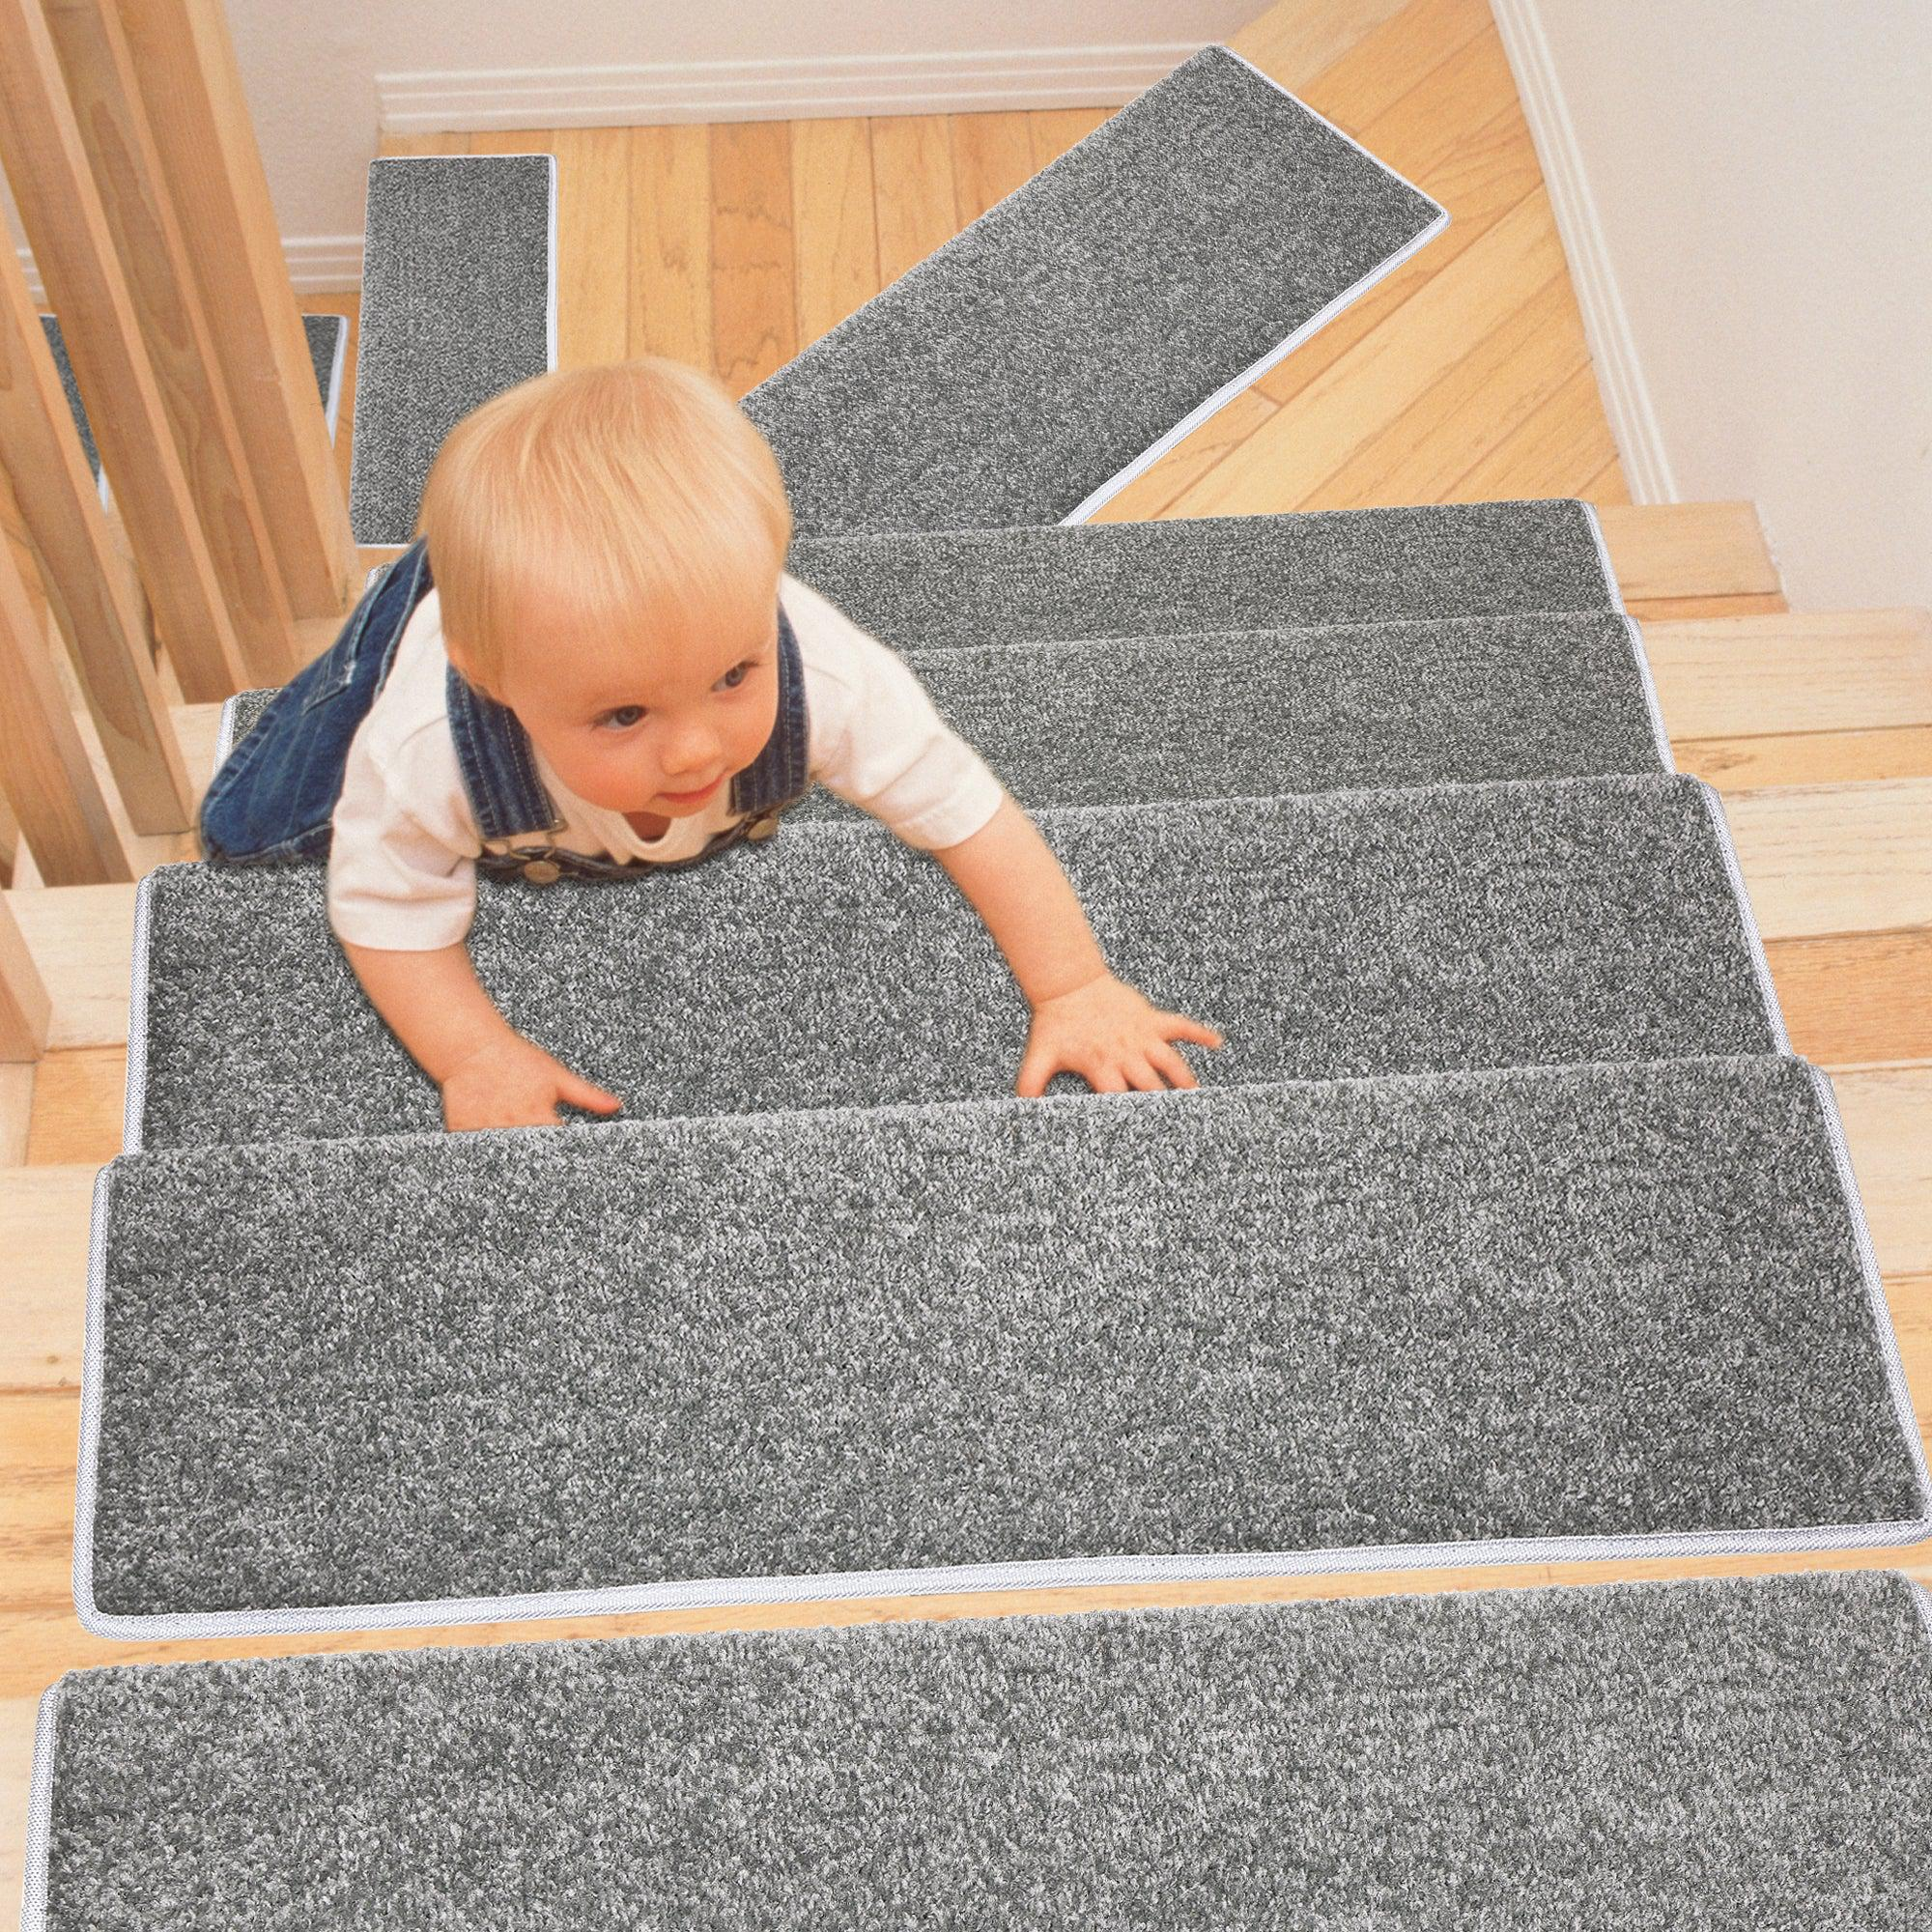 "PURE ERA Carpet Stair Treads Set Non-Slip Self Adhesive Ultra Plush Soft Pet Friendly Skid Tape Free Washable Reusable Drak Gray 9.5"" x 30""x1.2"""